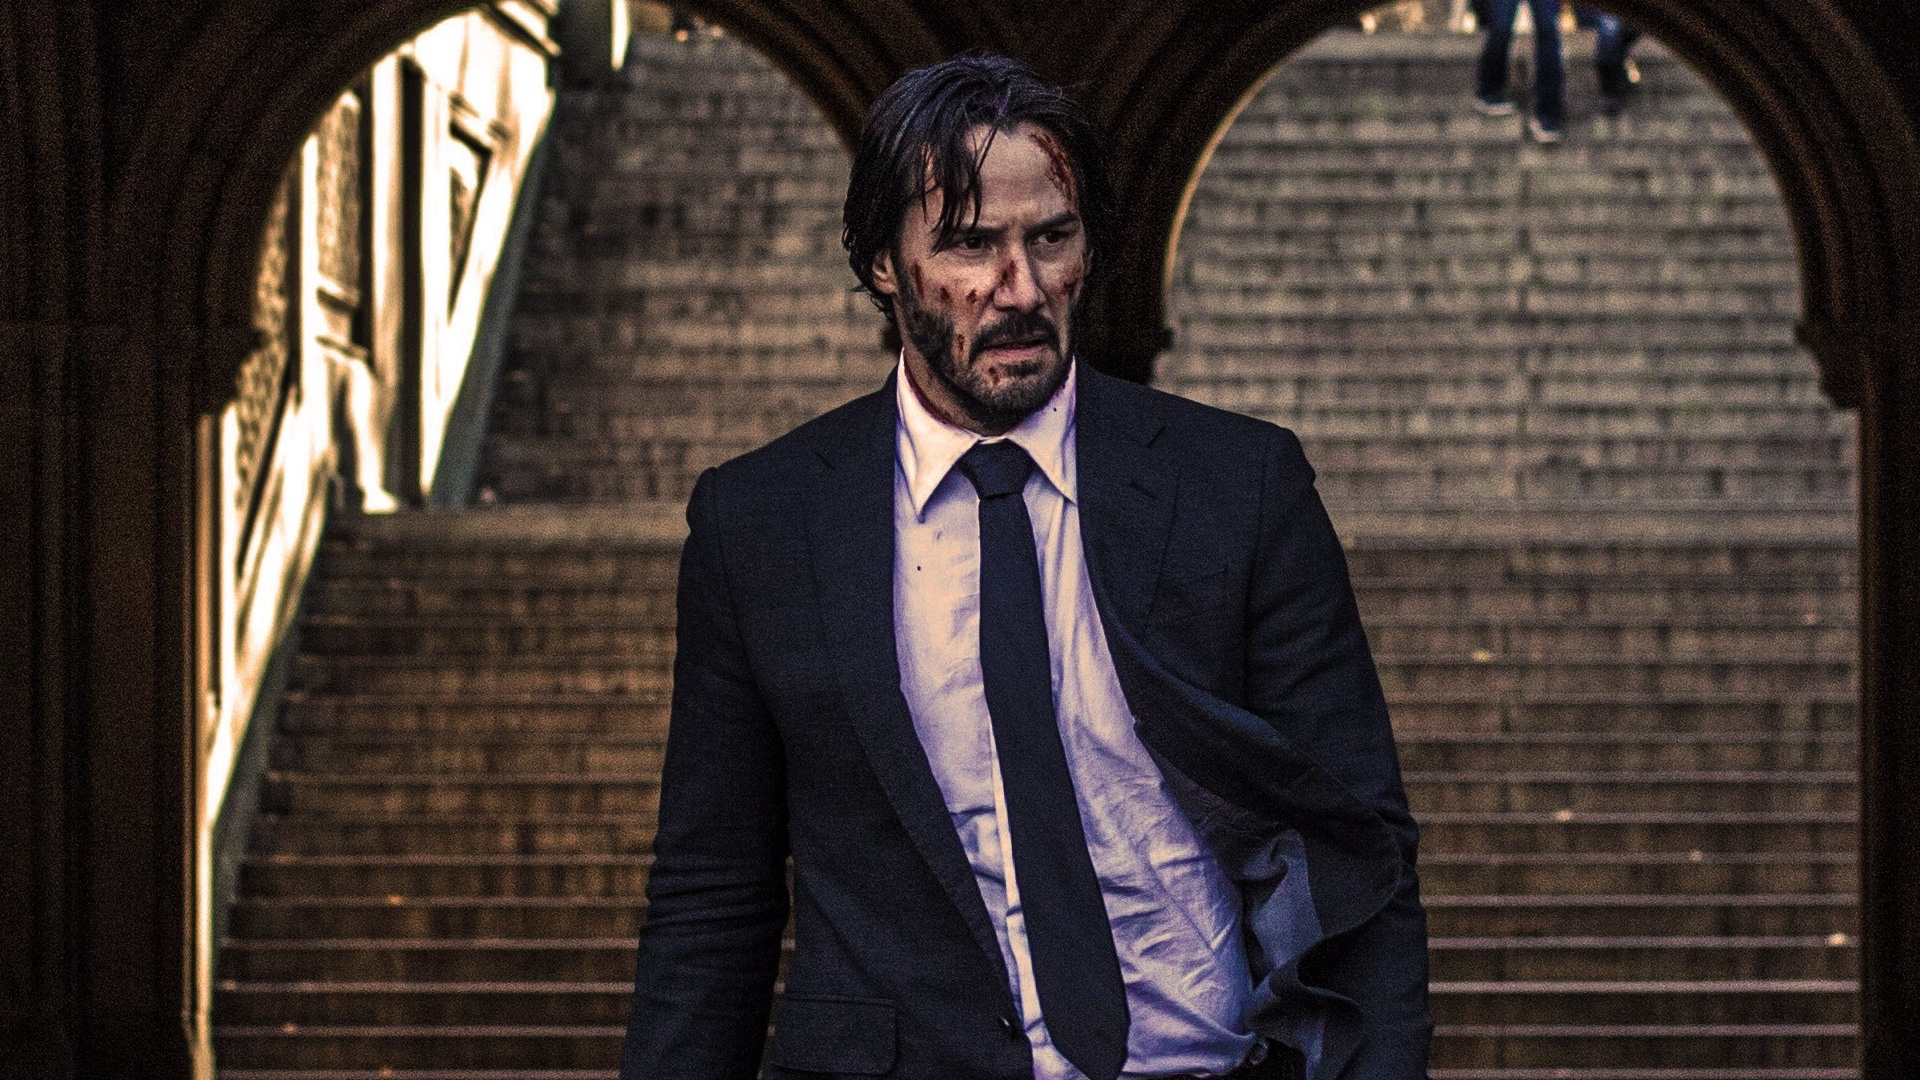 keanu-reeves-was-set-to-star-in-captain-marvel-before-john-wick-chapter-3-came-along-social.jpg